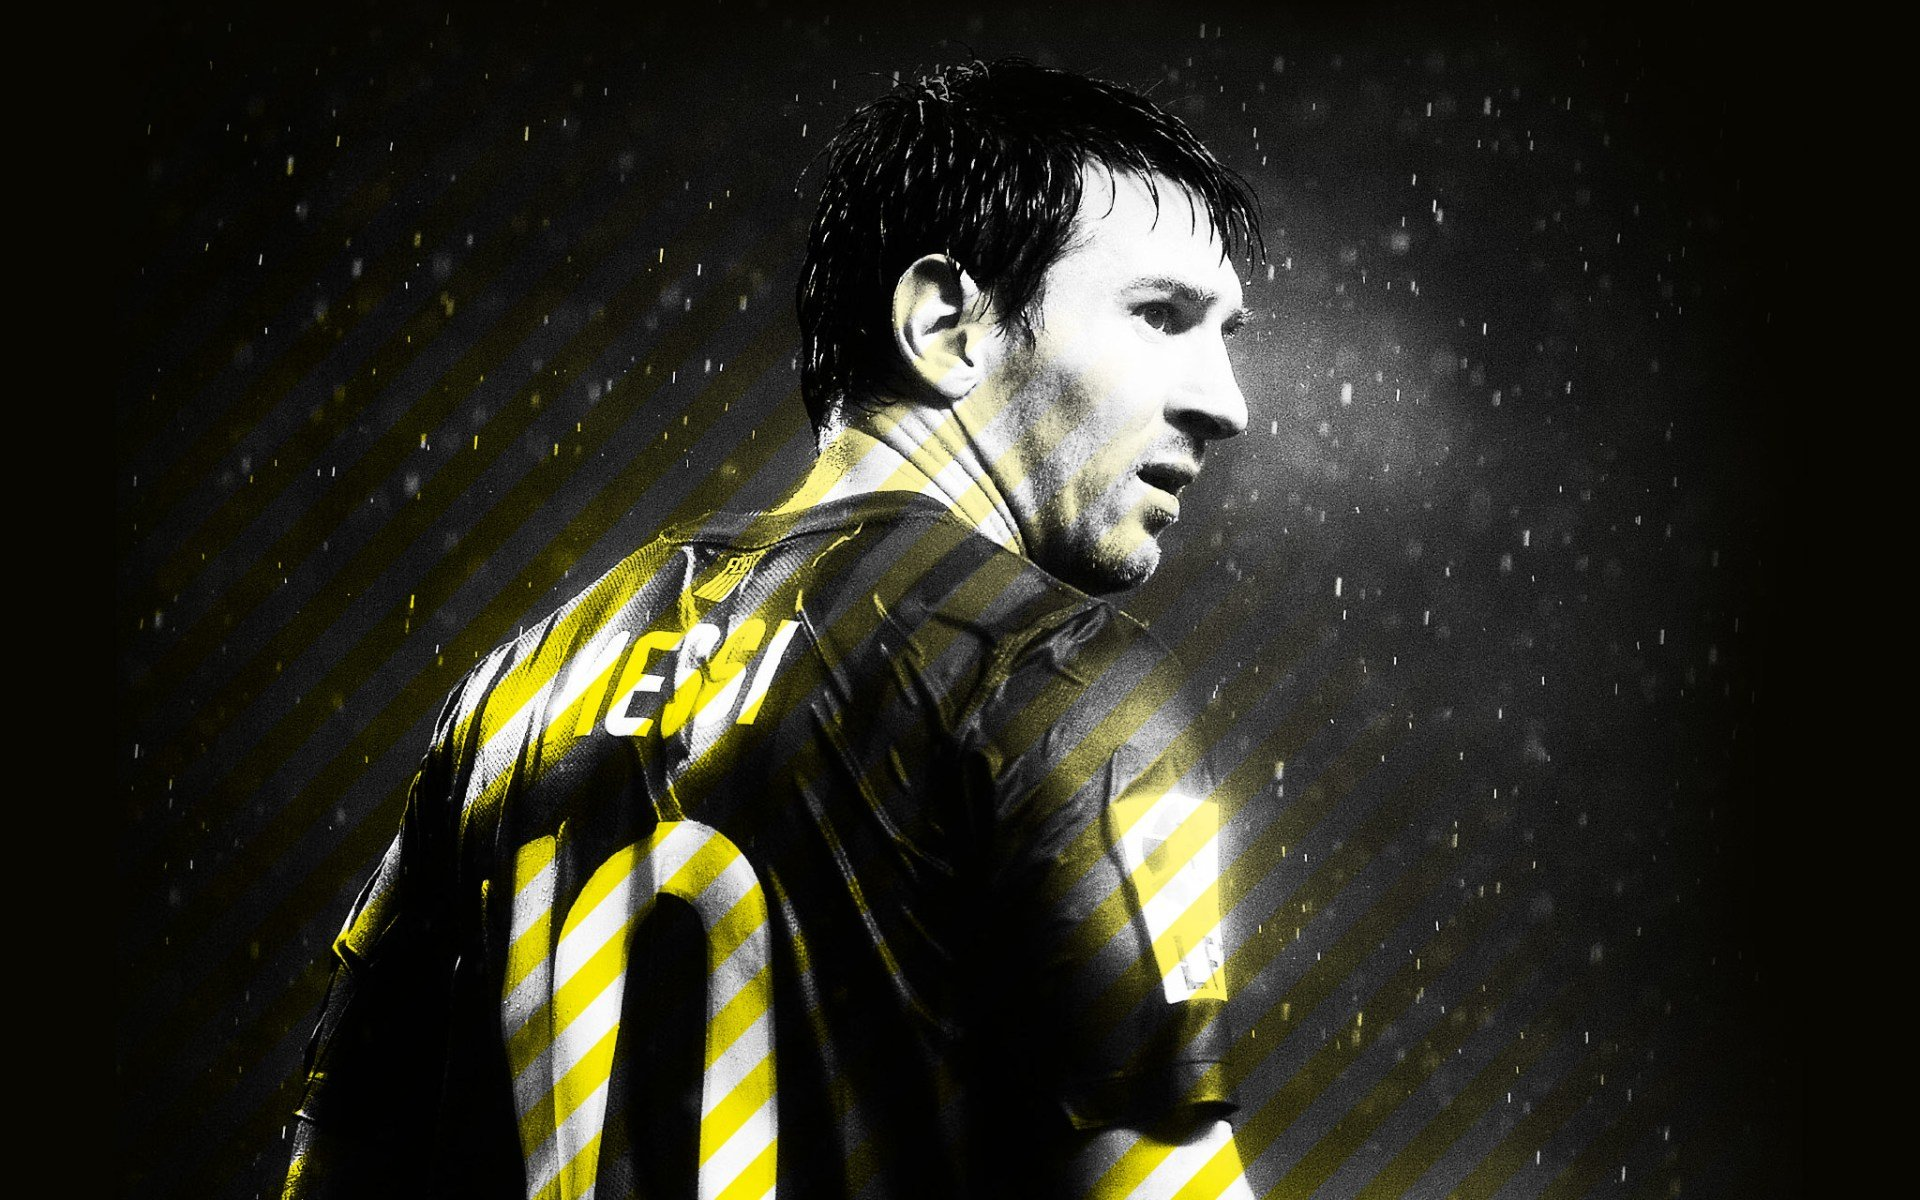 Download Hd 1920x1200 Lionel Messi Desktop Wallpaper Id 397112 For Free